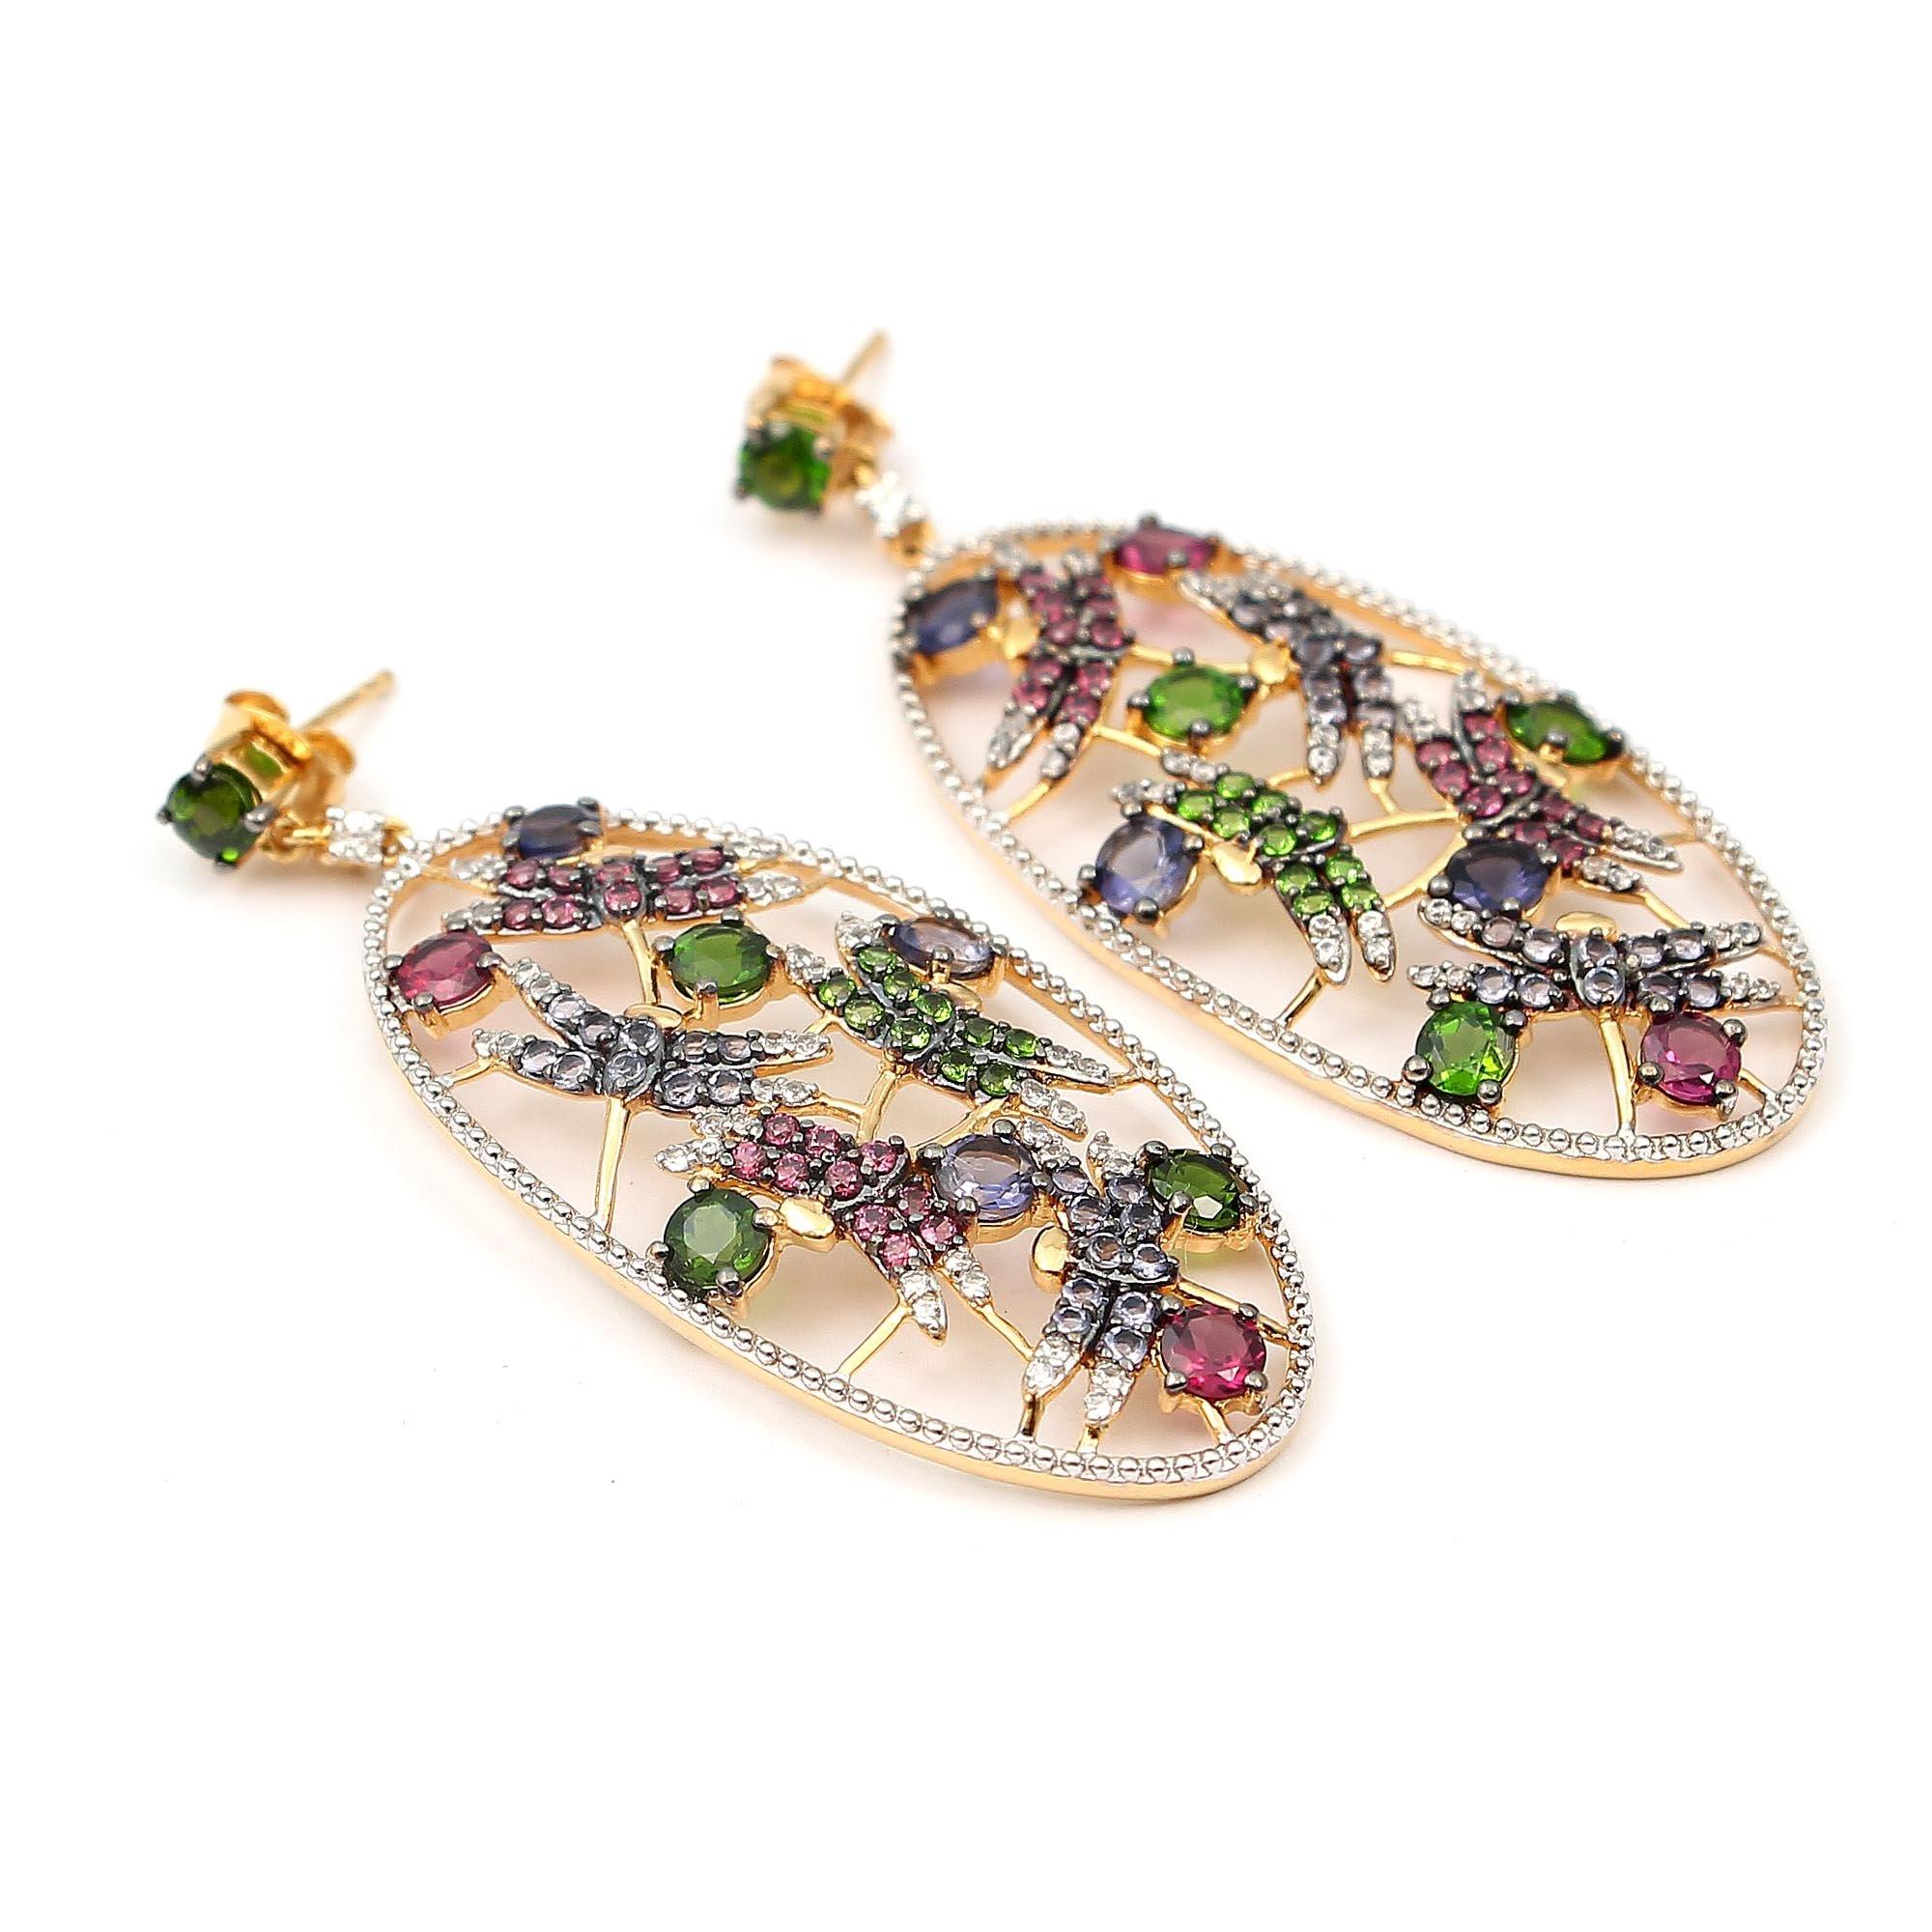 Neerupam collection 925 sterling silver natural gemstone studded dangles earrings for women and girls